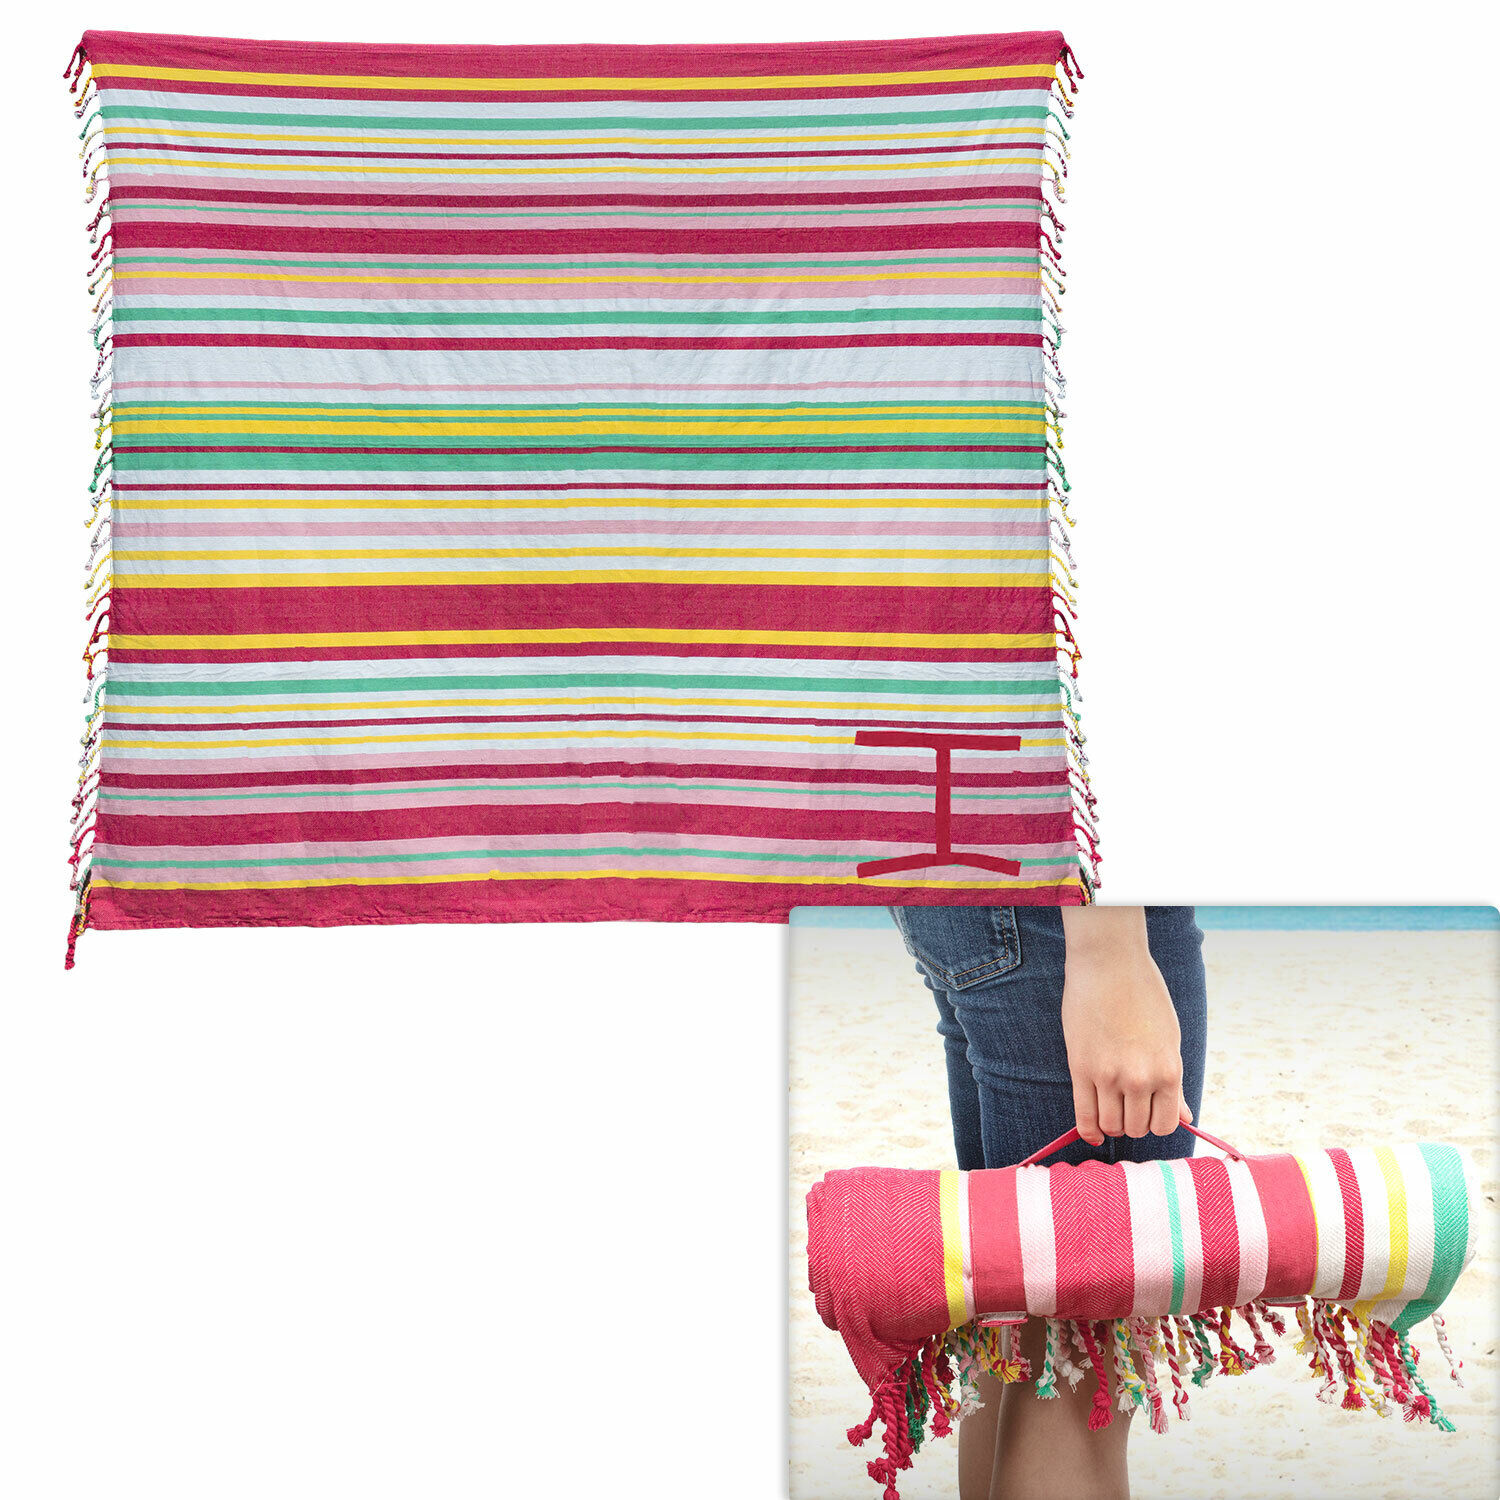 100% Cotton Fringe Striped Beach Picnic Blankets Pink Yellow Roll-N-Go 60″ x 60″ Bedding